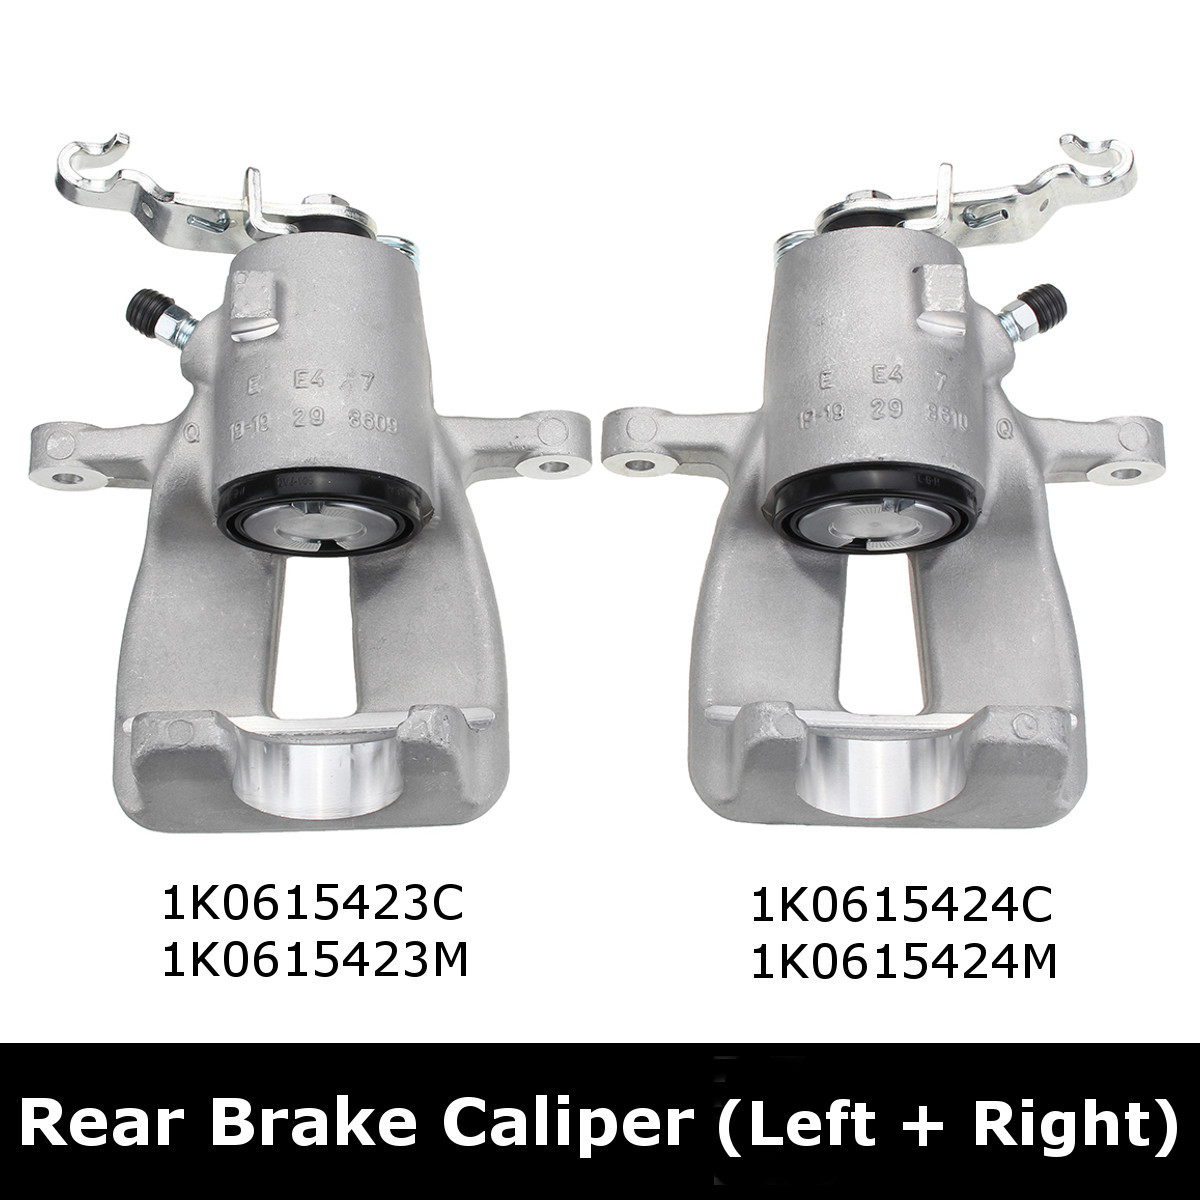 Brake Caliper Rear Left+Right For Audi A3 TT SEAT /SKODA For VW Eos Golf 5 6 Jetta TOURAN автомобильный dvd плеер wincen android 4 1 dvd vw golf 5 6 passat jetta tiguan touran skoda octavia seat altea